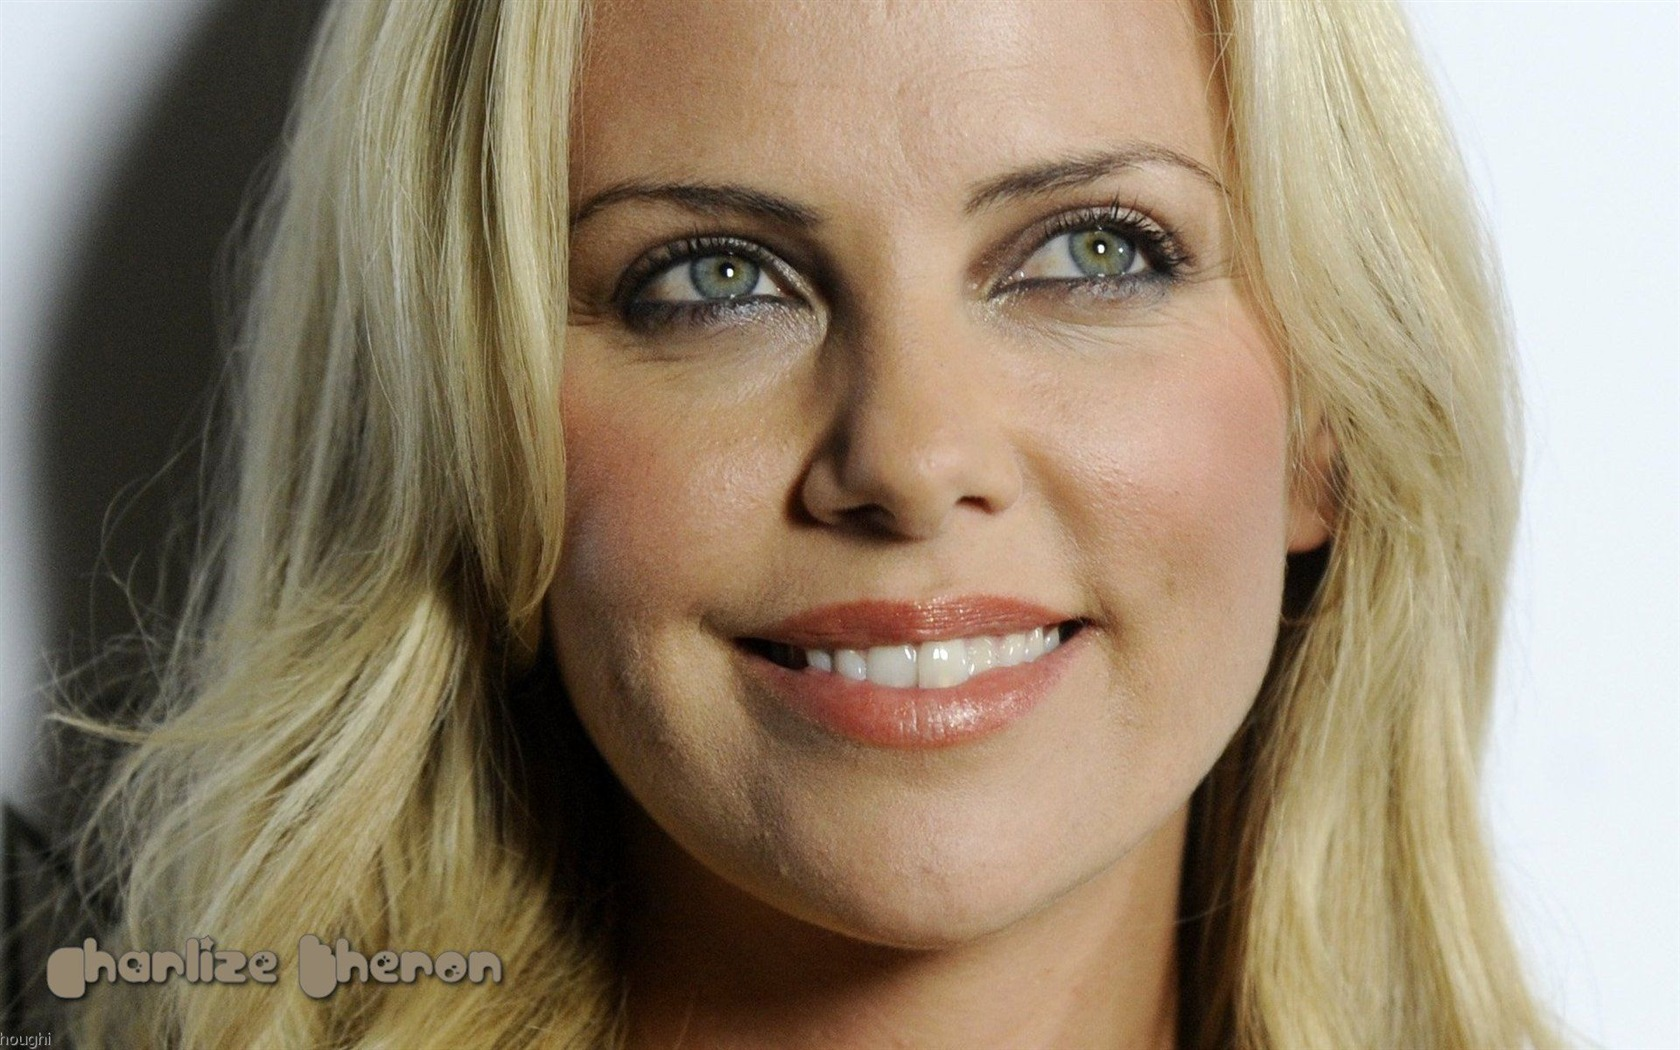 Charlize Theron #099 - 1680x1050 Wallpapers Pictures Photos Images